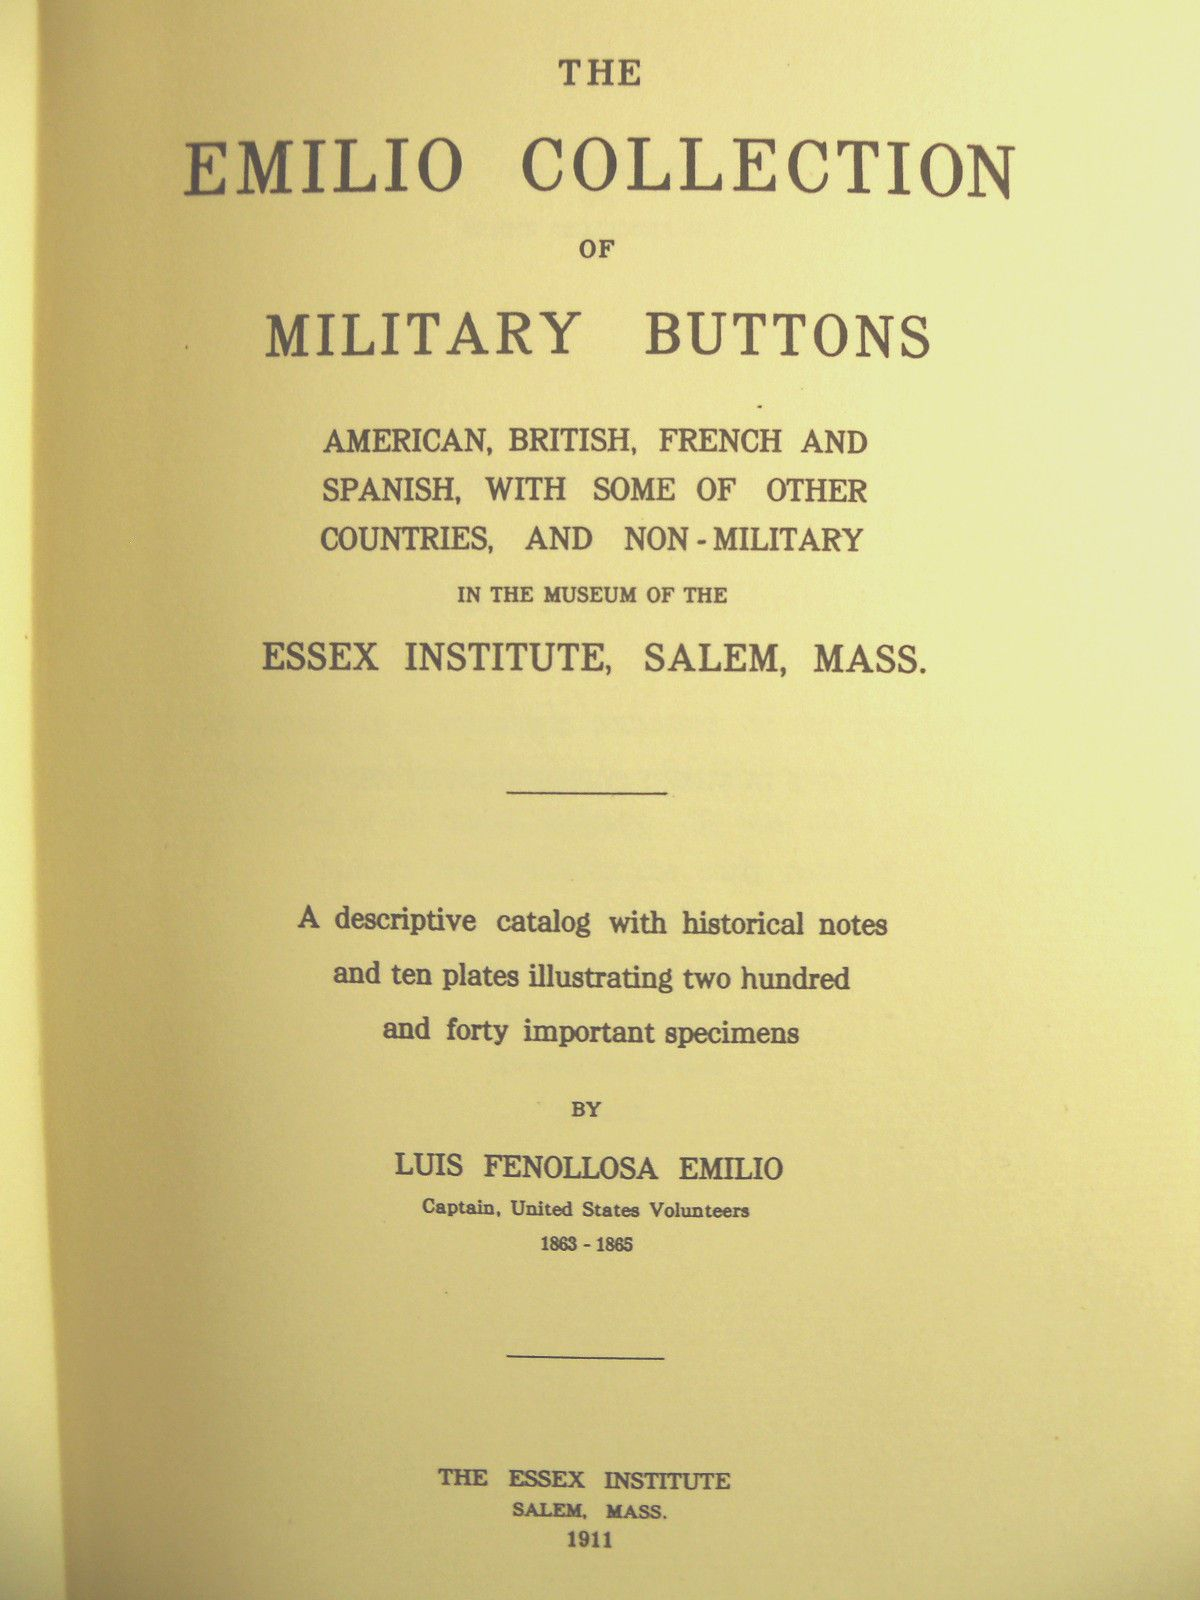 Militaria Dictionary and Beginner's Guide